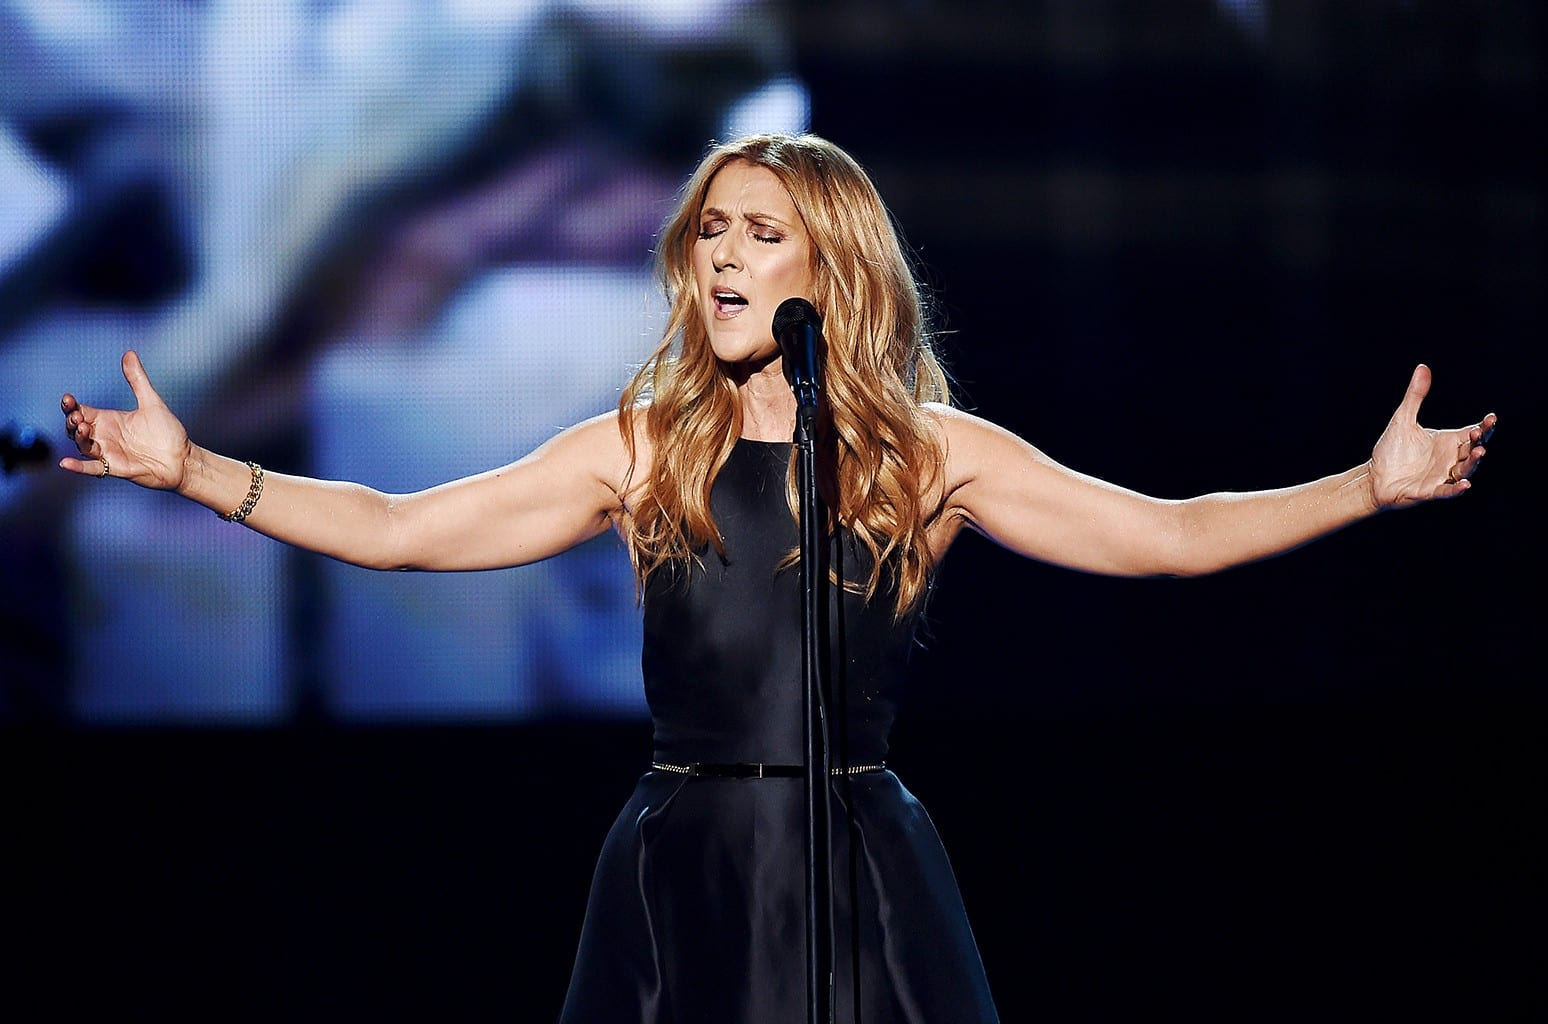 Who Is Celine Dion?